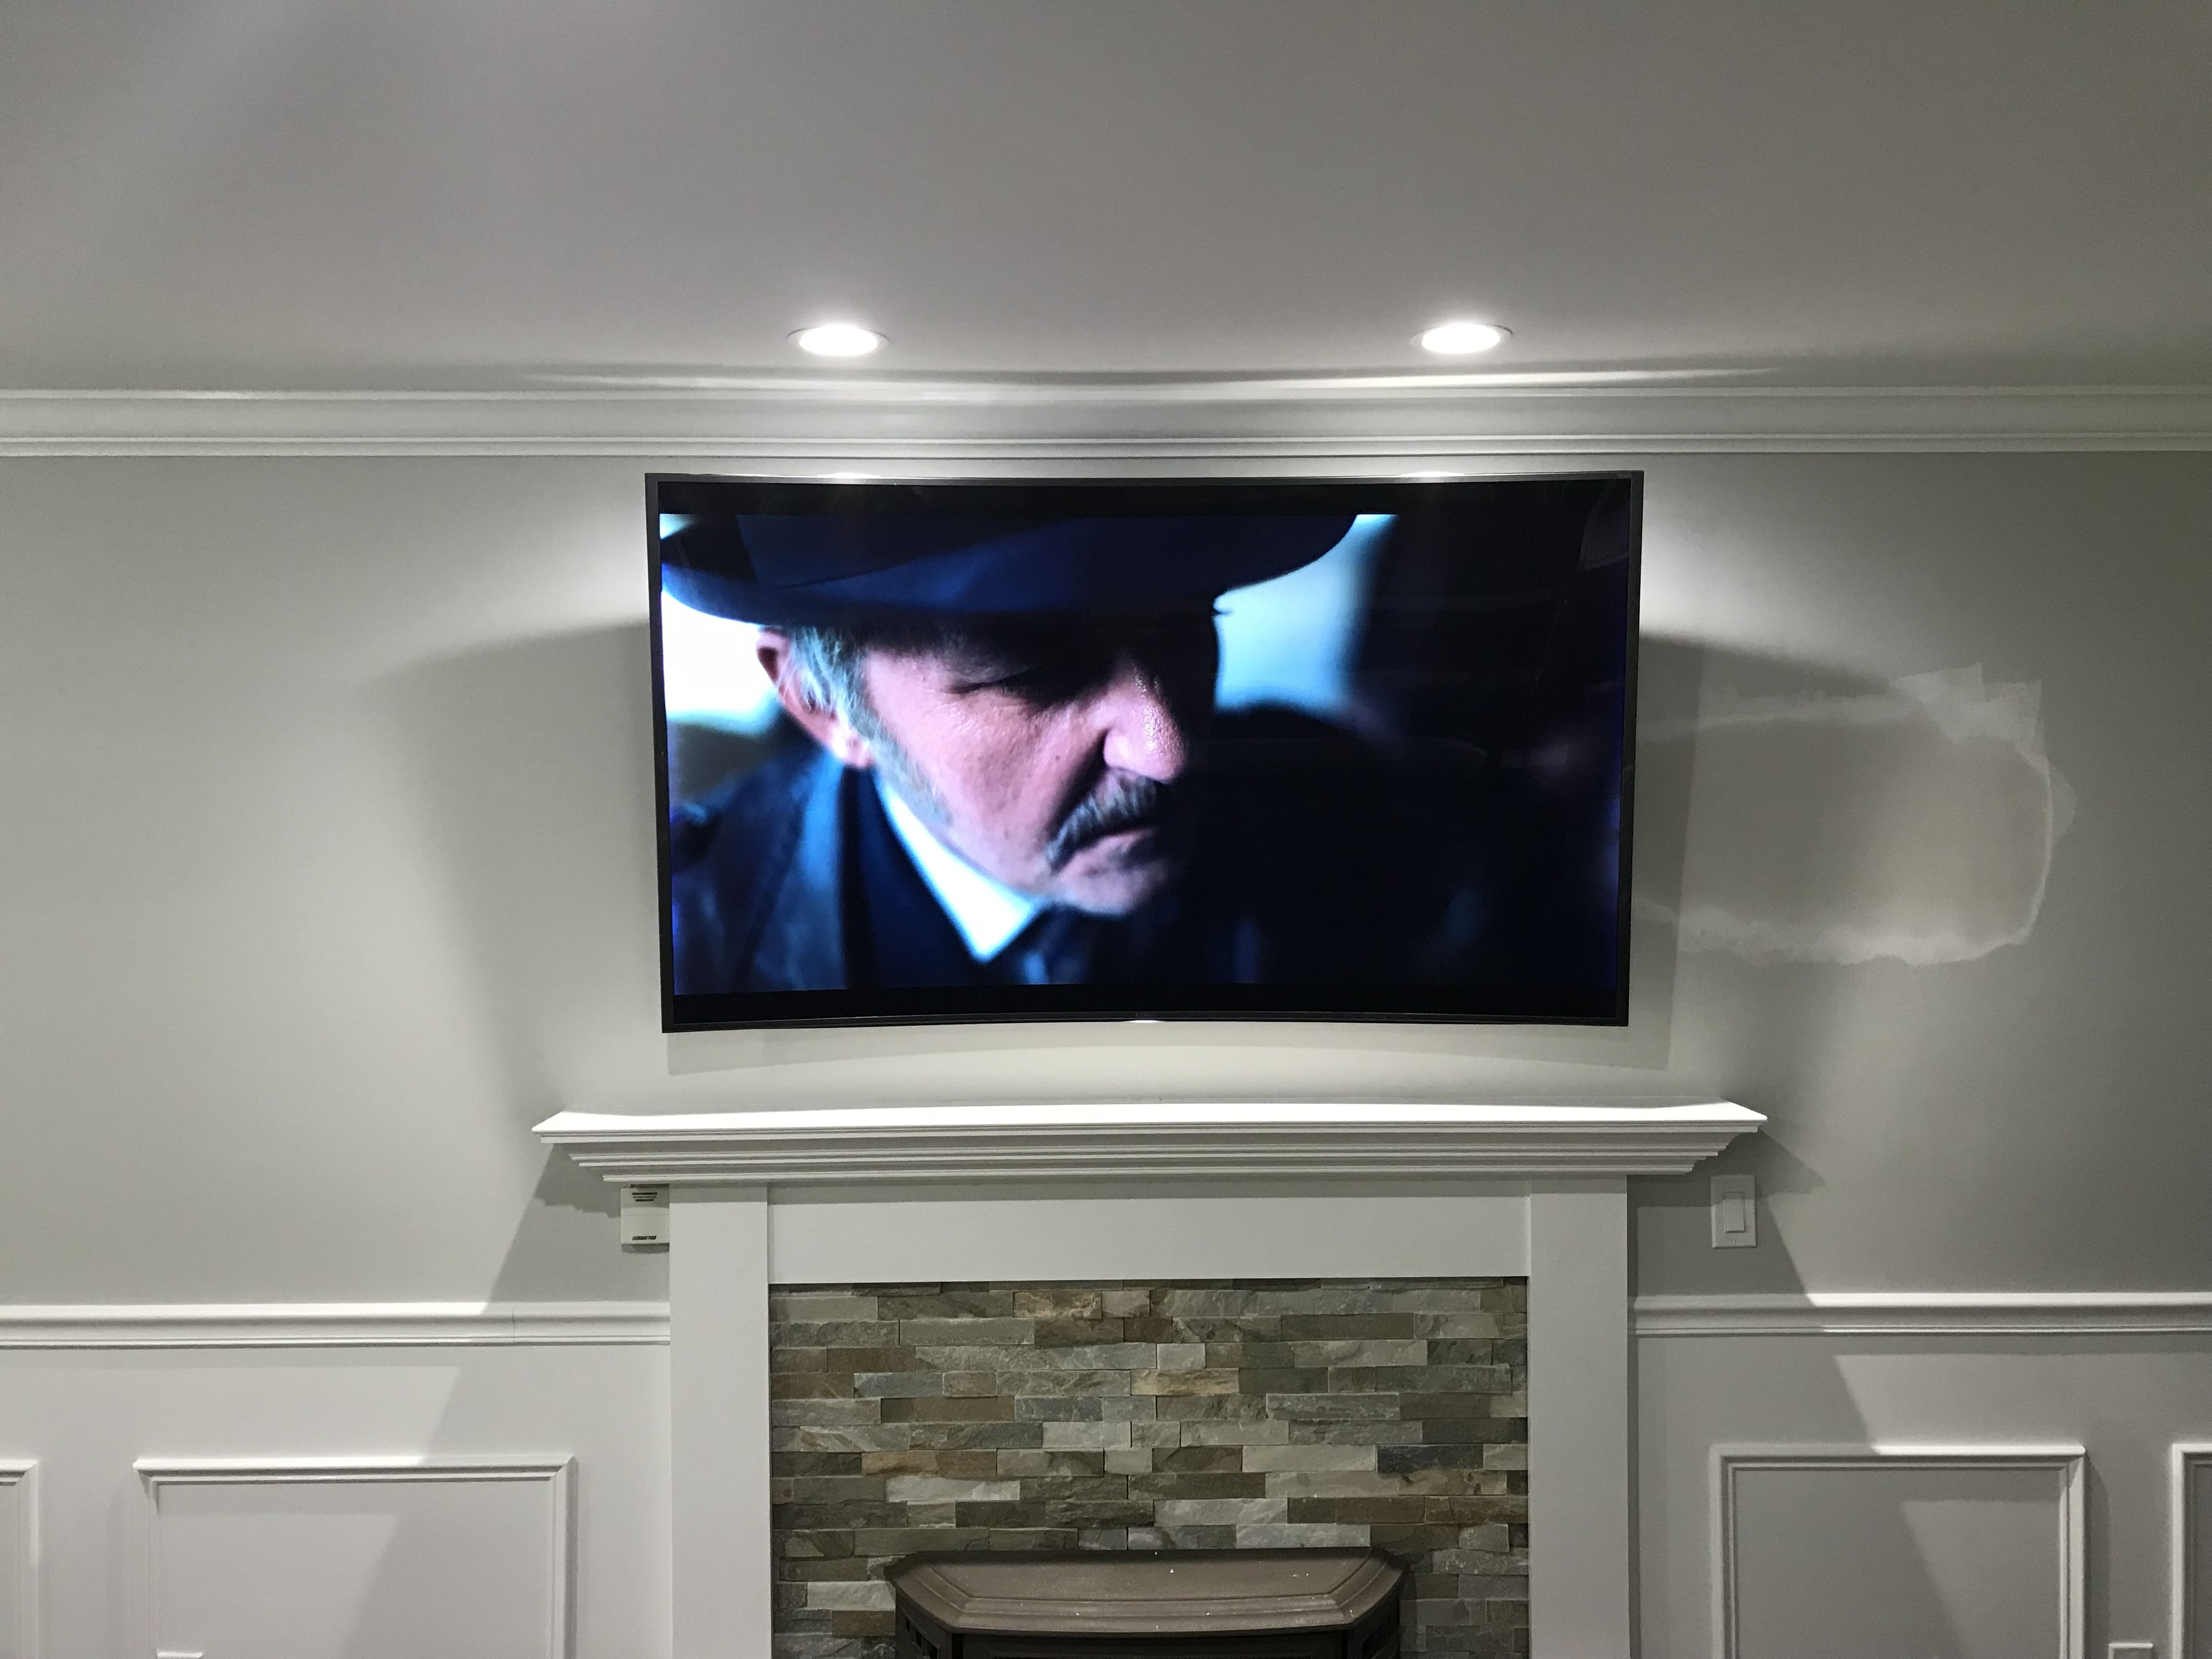 Curved Tv Mounted Over Fireplace With New Outlet Added And Wires